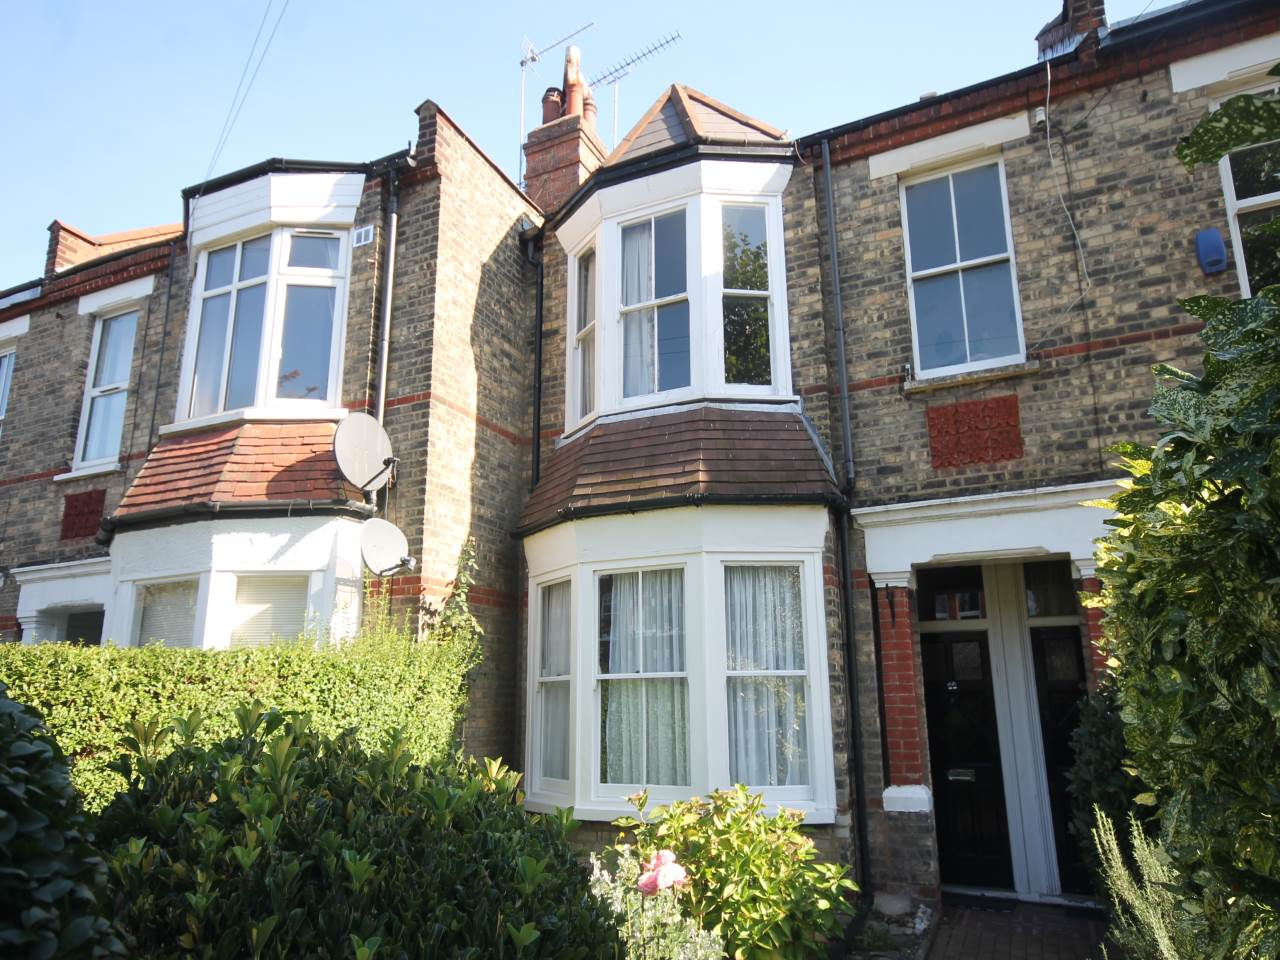 2 bed flat to rent in East Finchley, N2